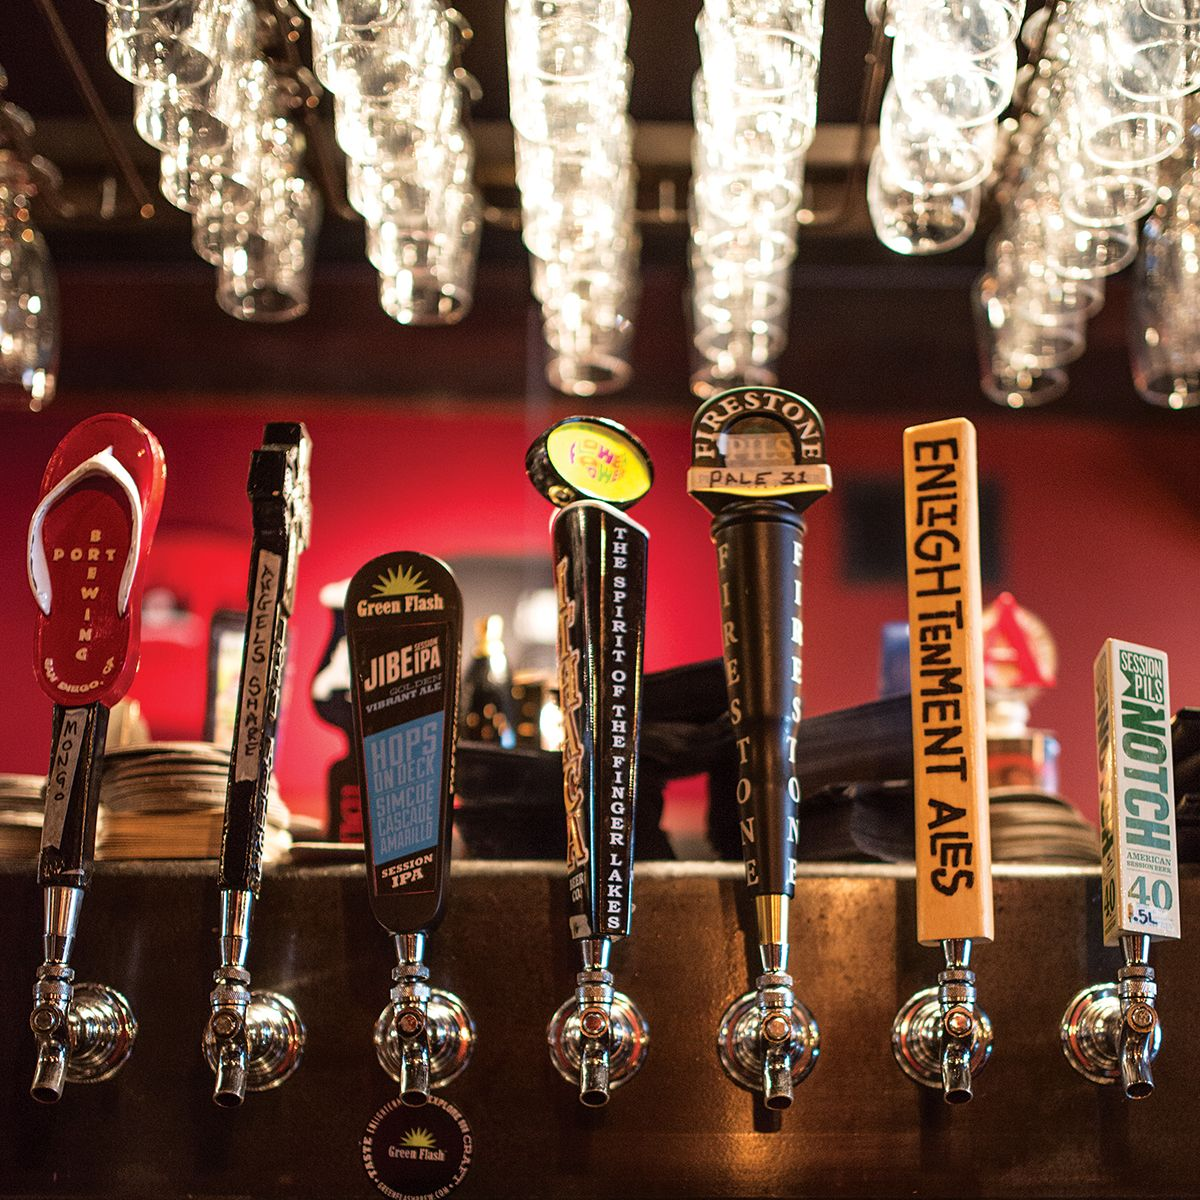 It S Possible To Sample A Few Must Try Local Varieties At Beer Bars Right In Boston Here Are The Five Beer Bars In Boston You Don Beer Bar Beer Restaurant Bar